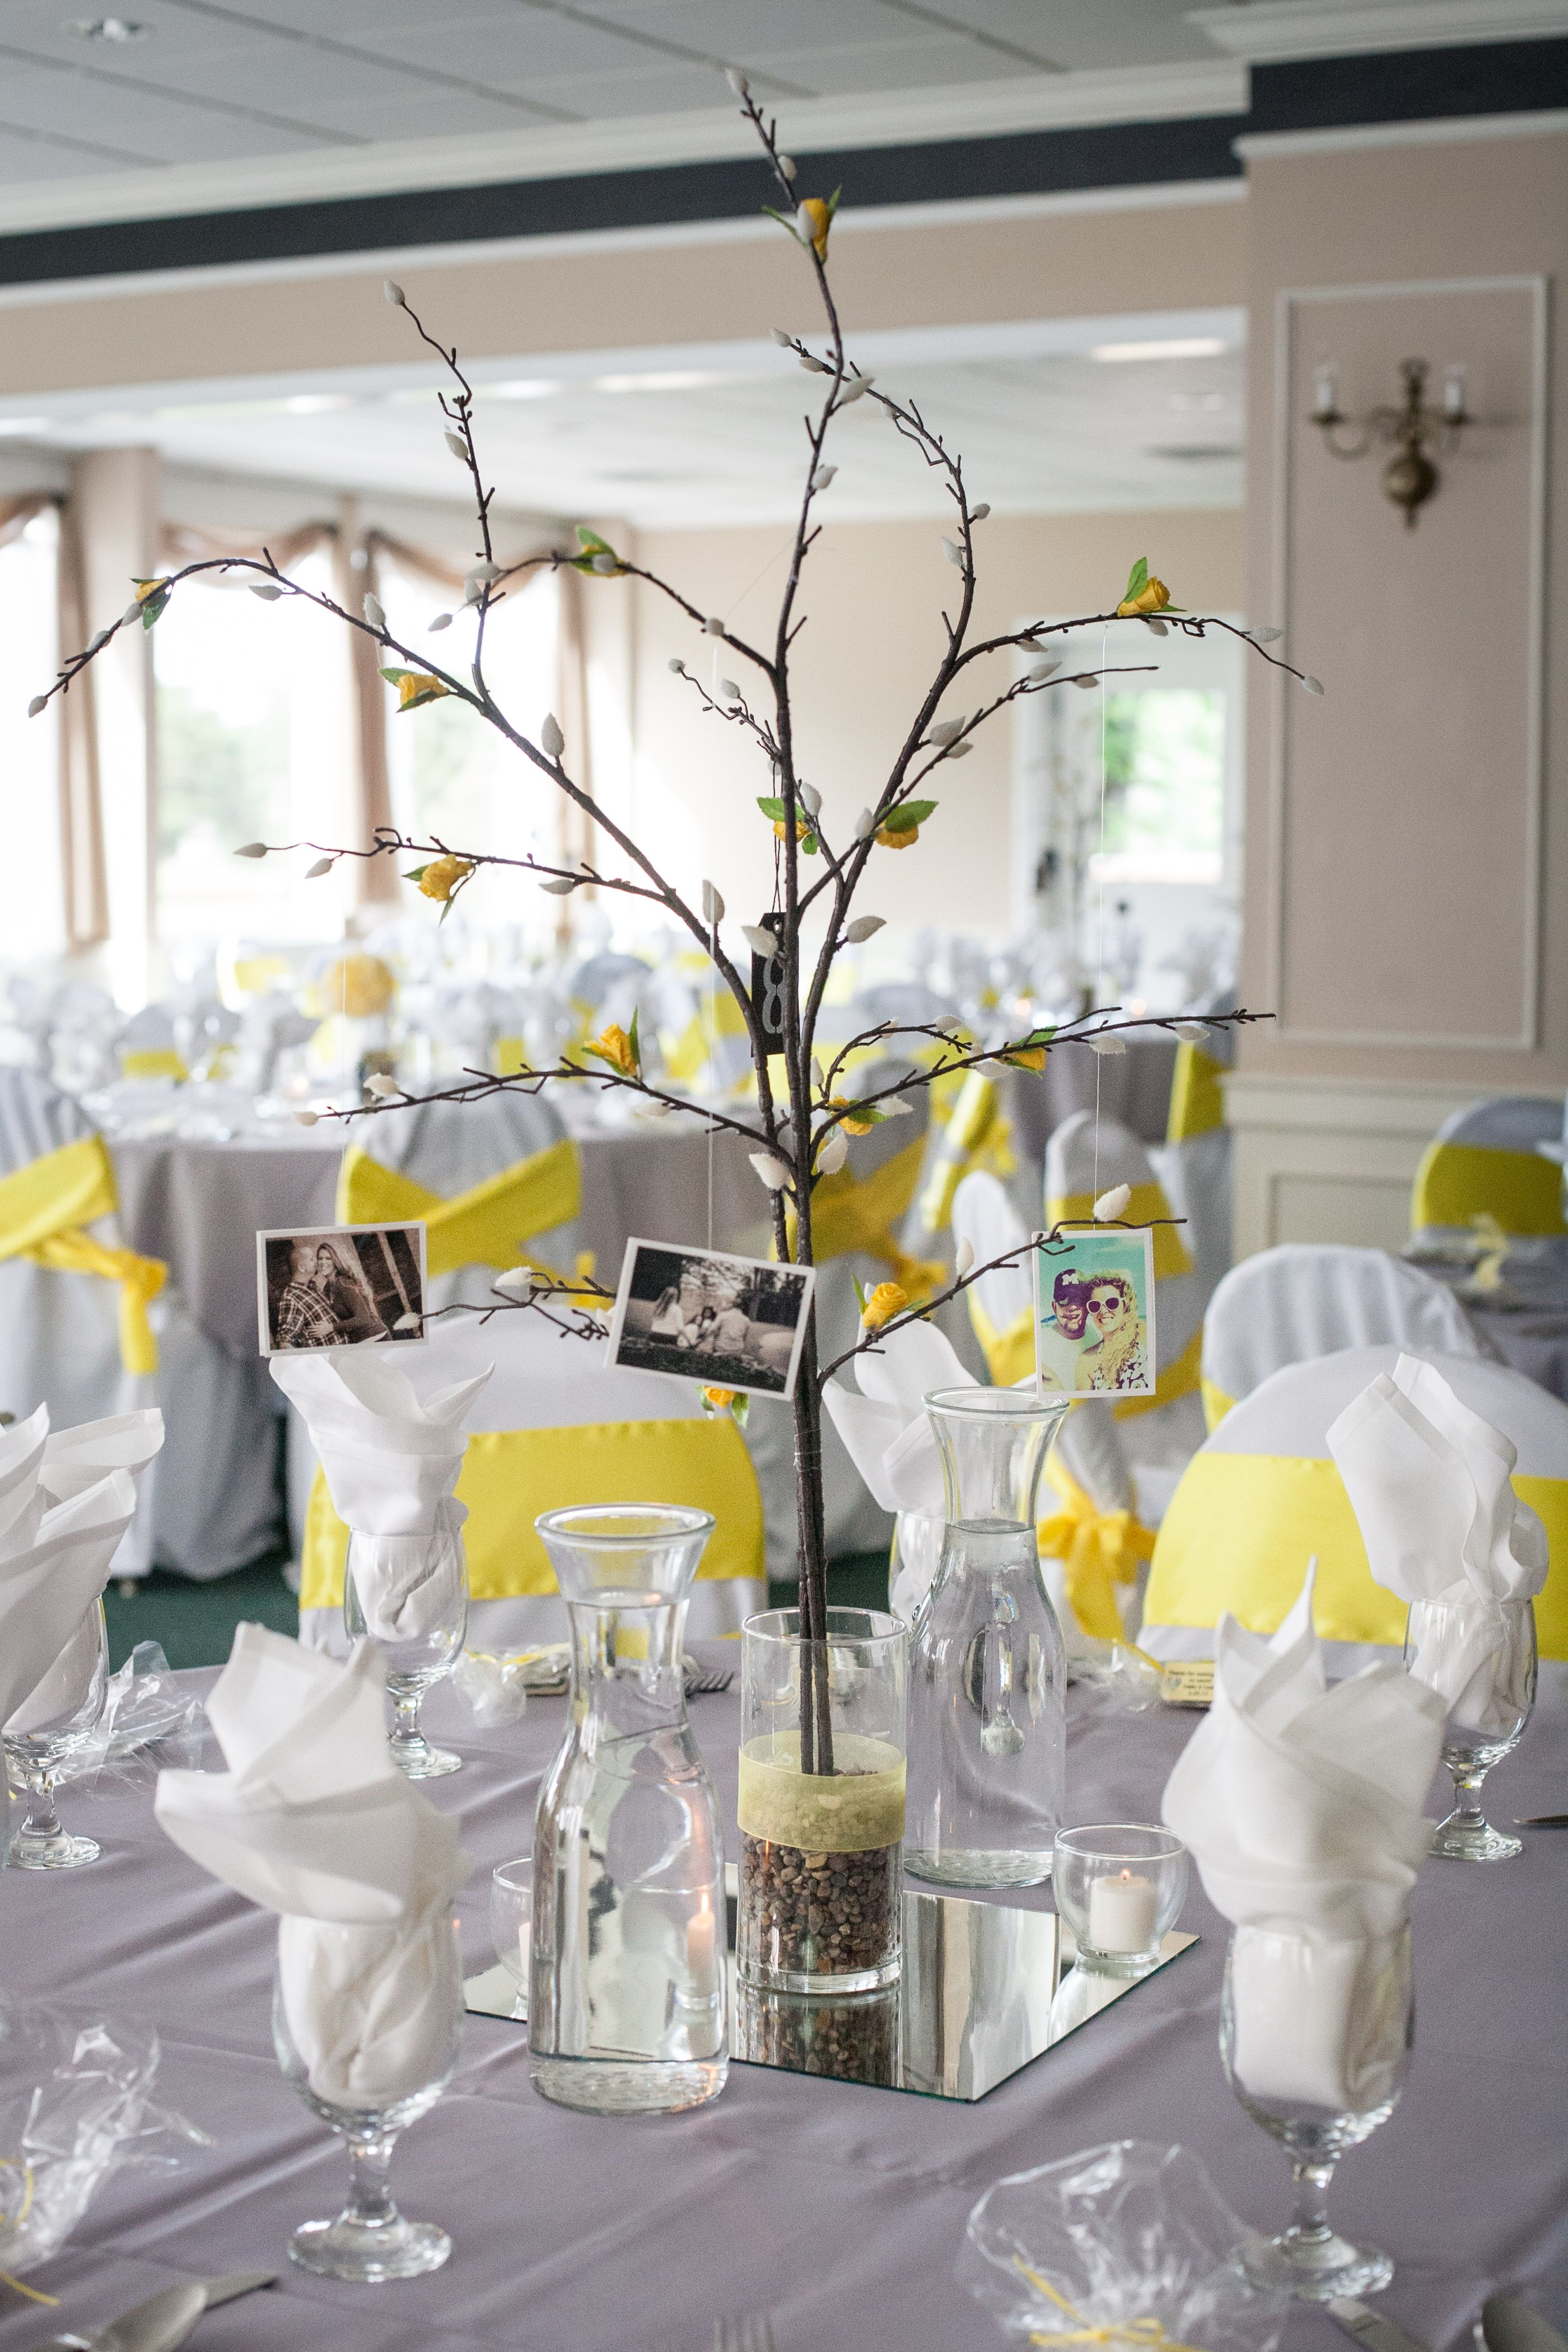 Diy wedding centerpiece branches pictures and crepe paper flower diy wedding centerpiece branches pictures and crepe paper flower buds yellow gray junglespirit Choice Image